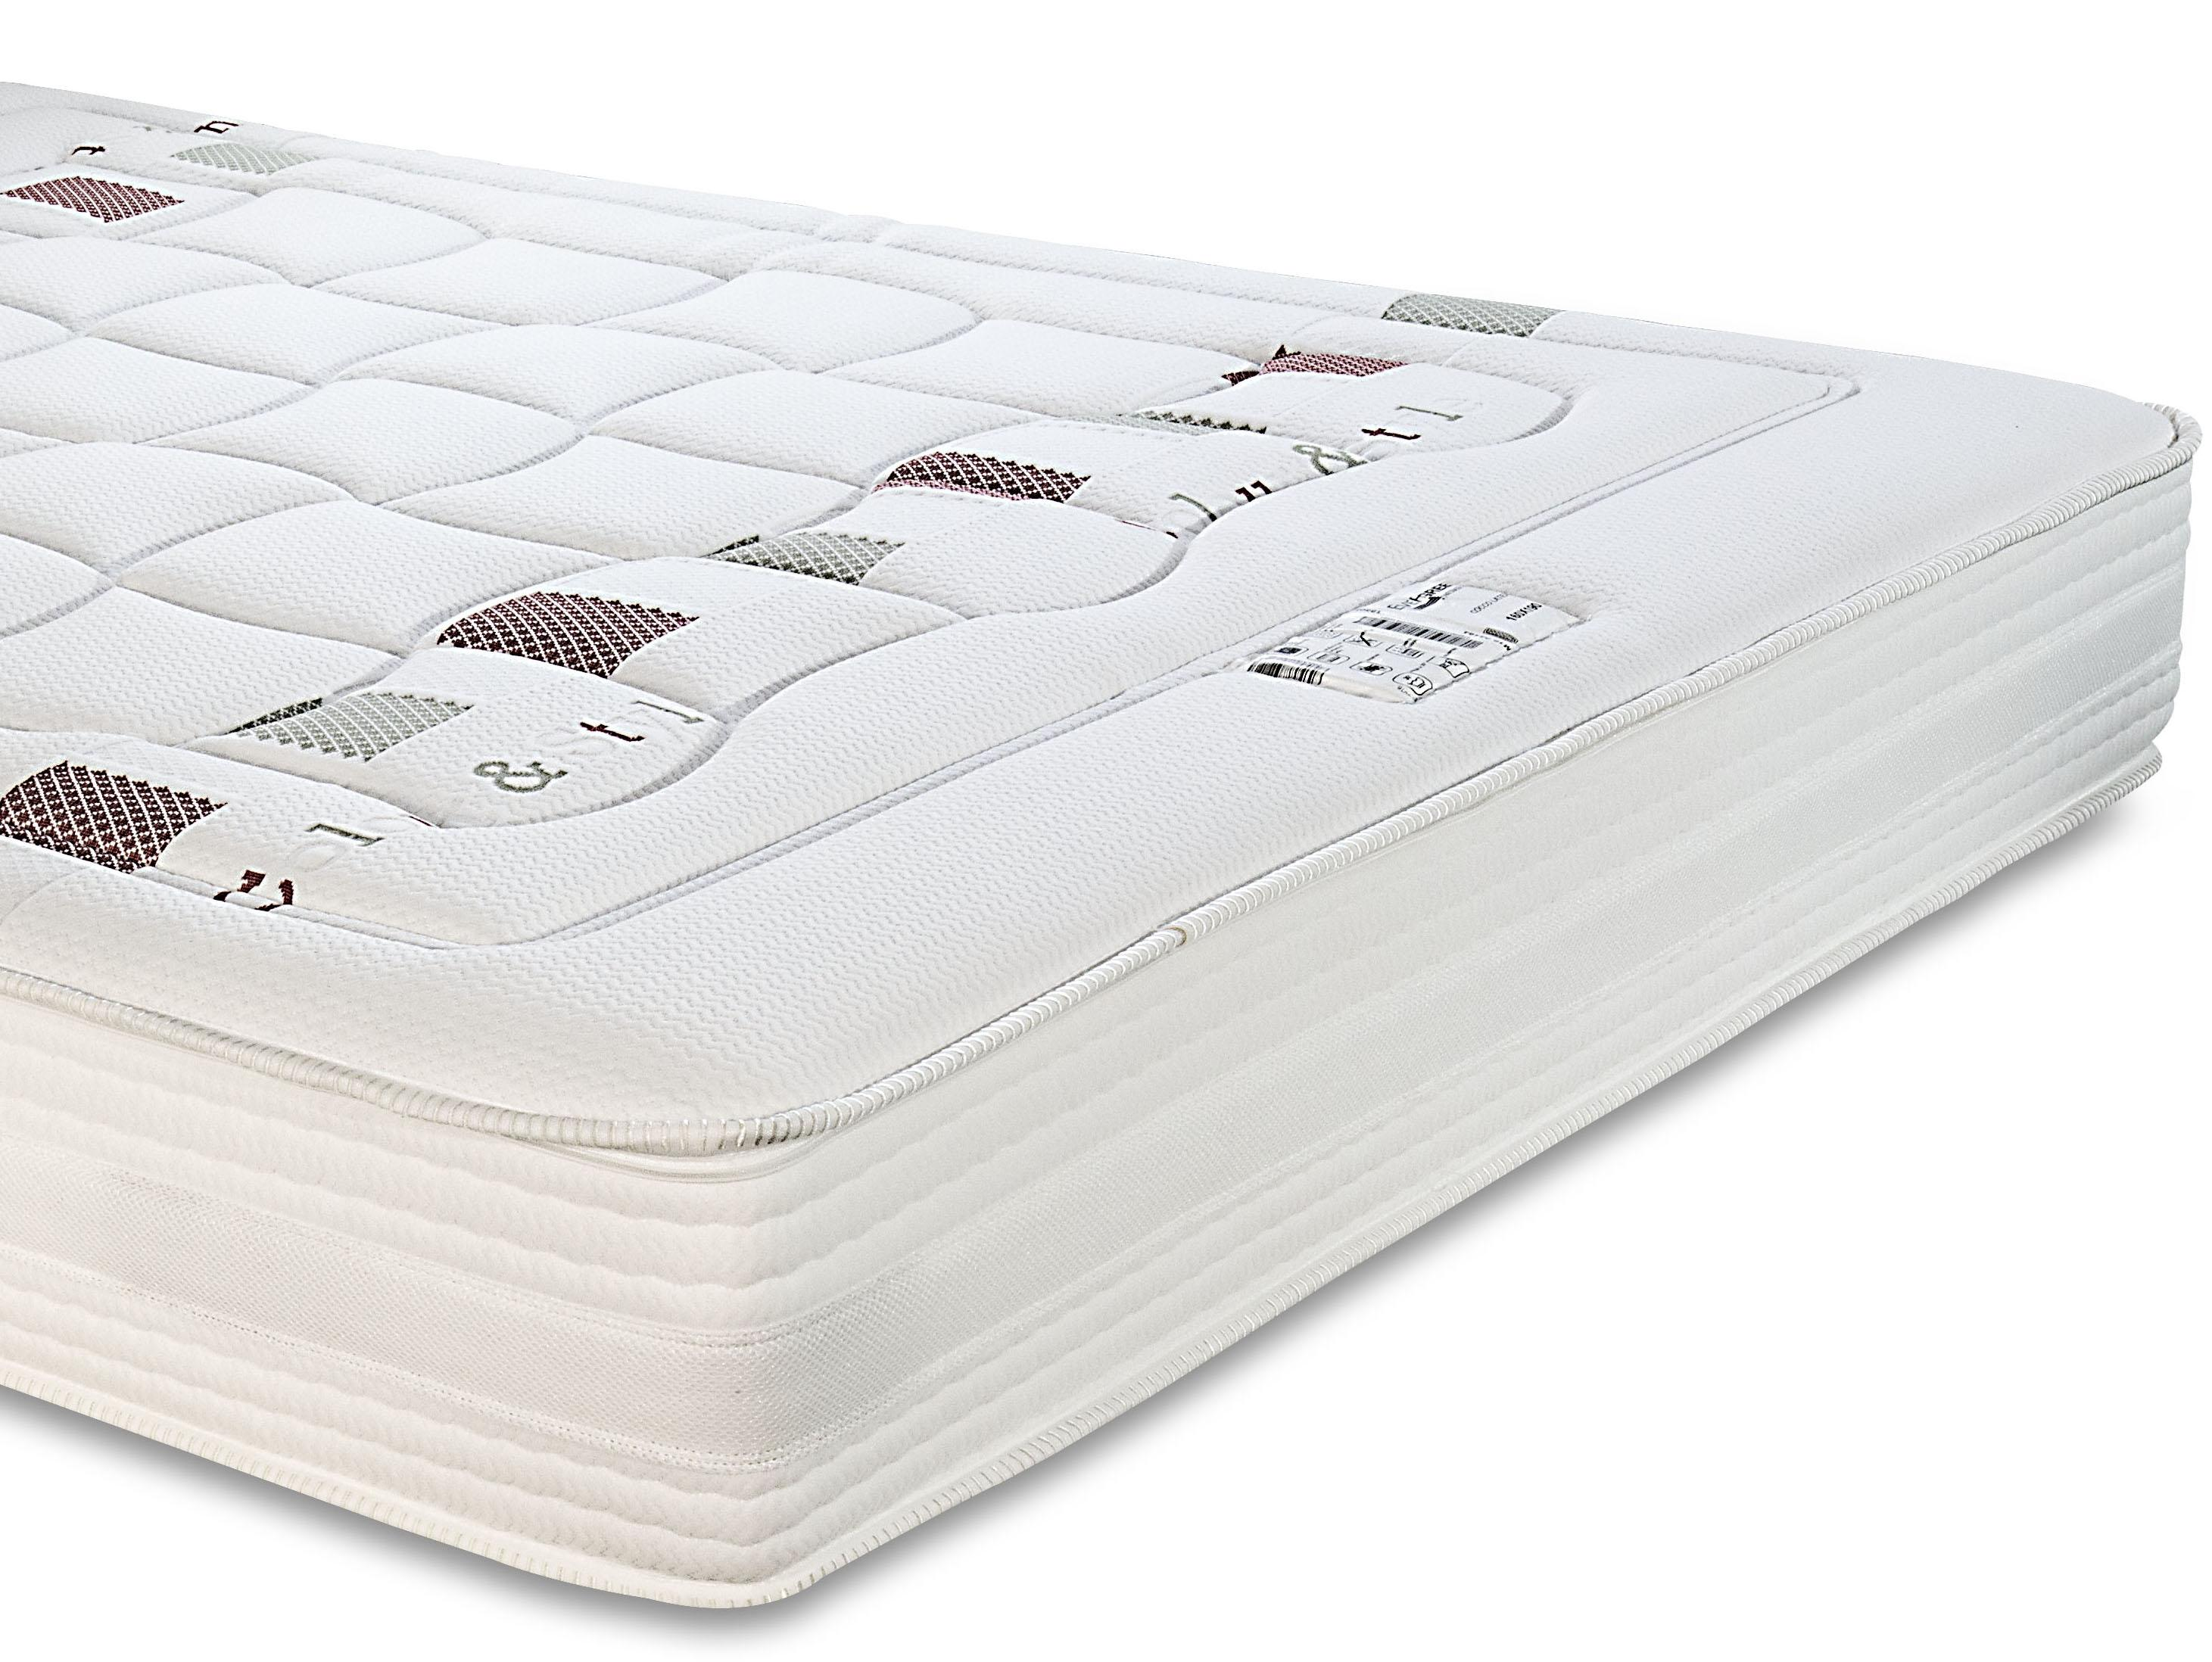 MATELAS LATEX ET FIBRE DE COCO NATUREL | COCCO LATEX